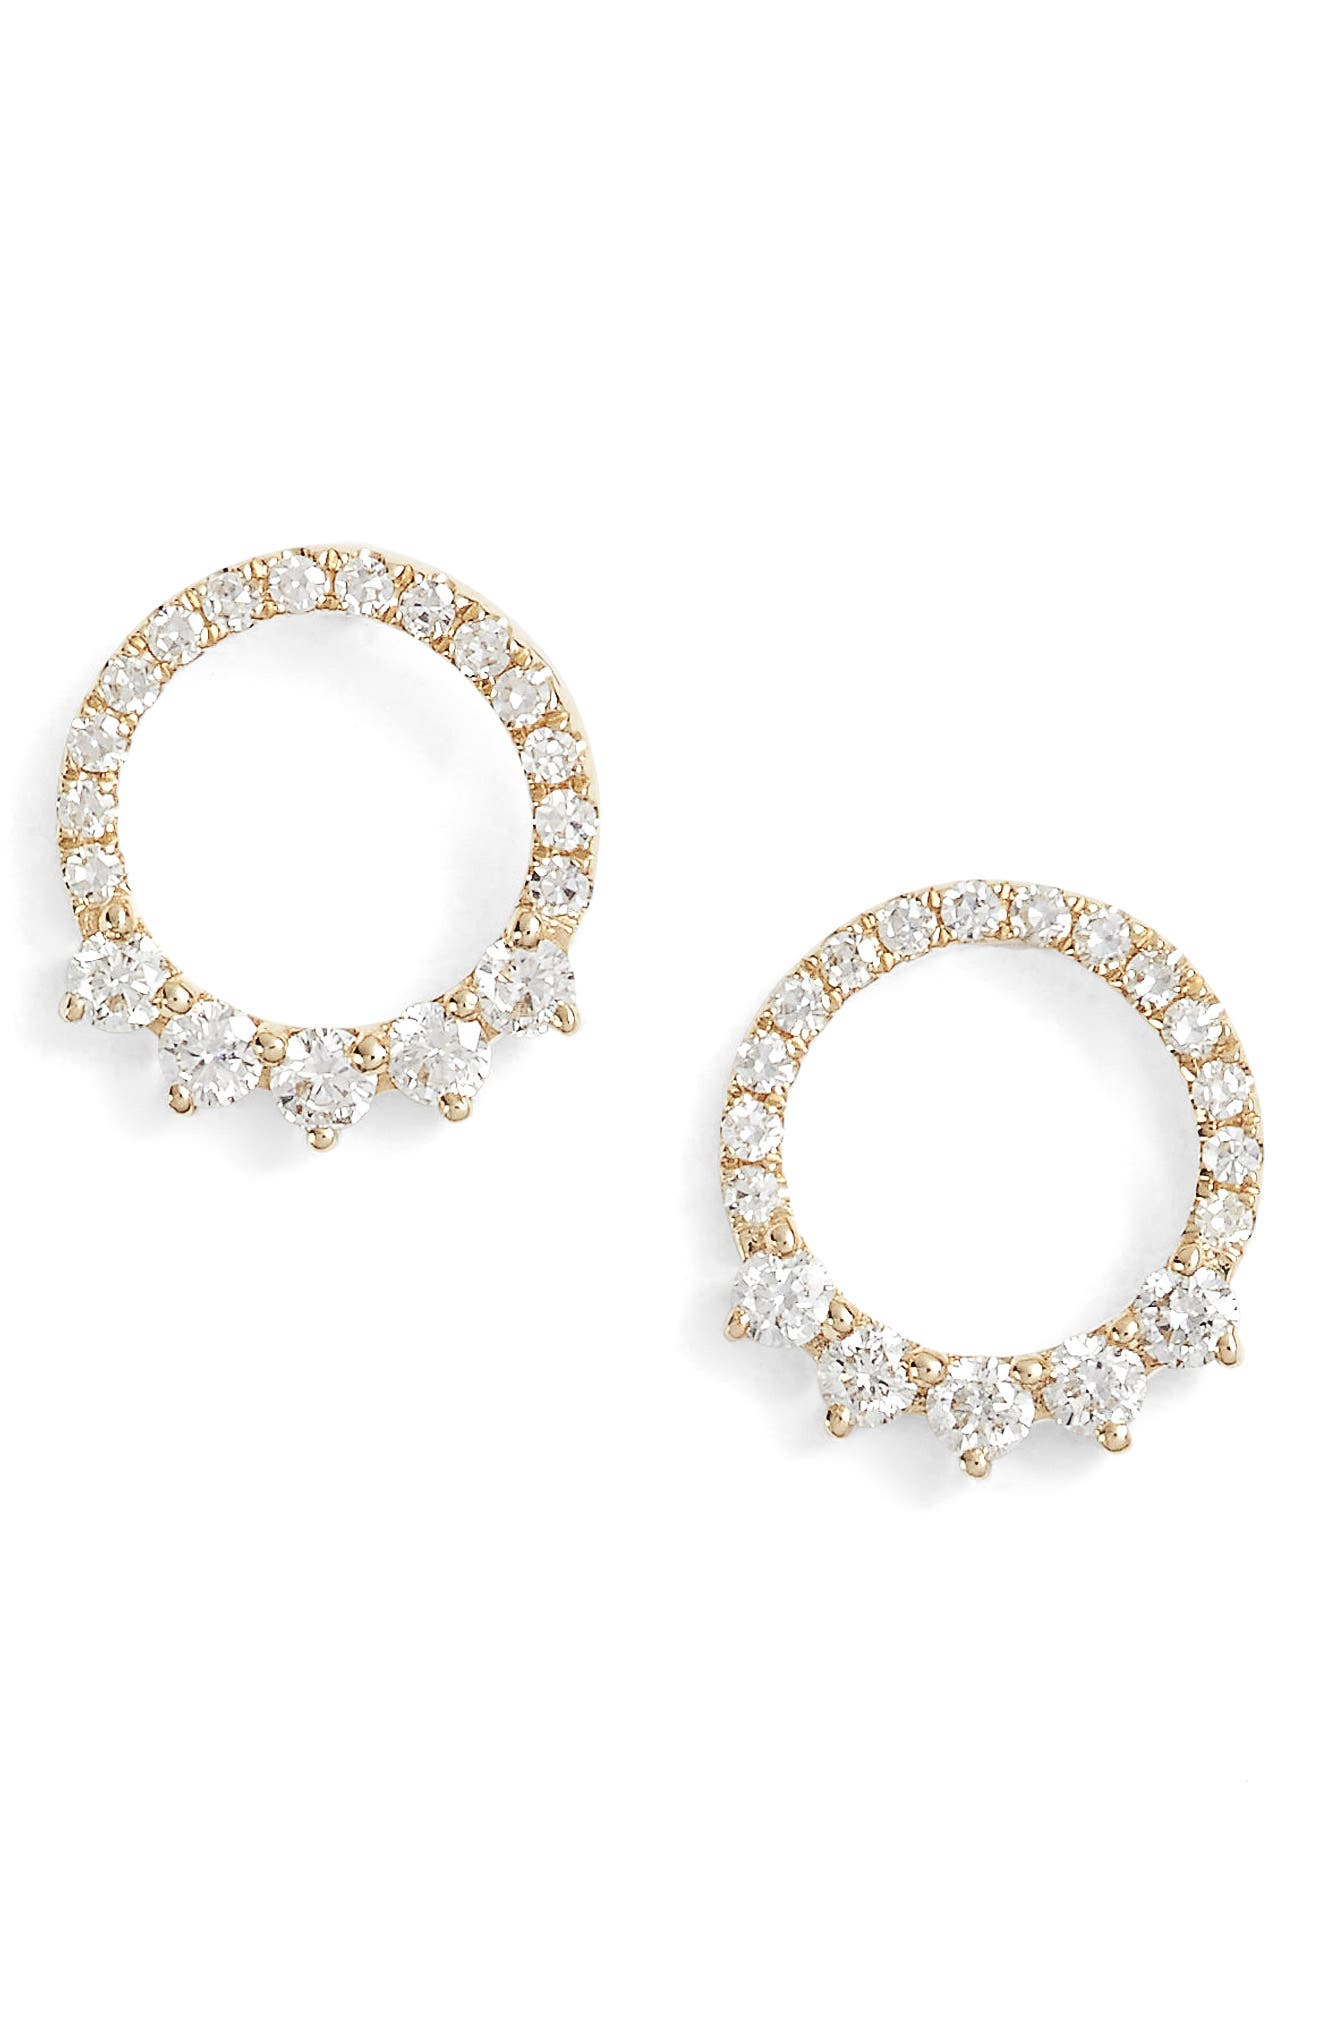 EF COLLECTION Floating Open Circle Stud Earrings